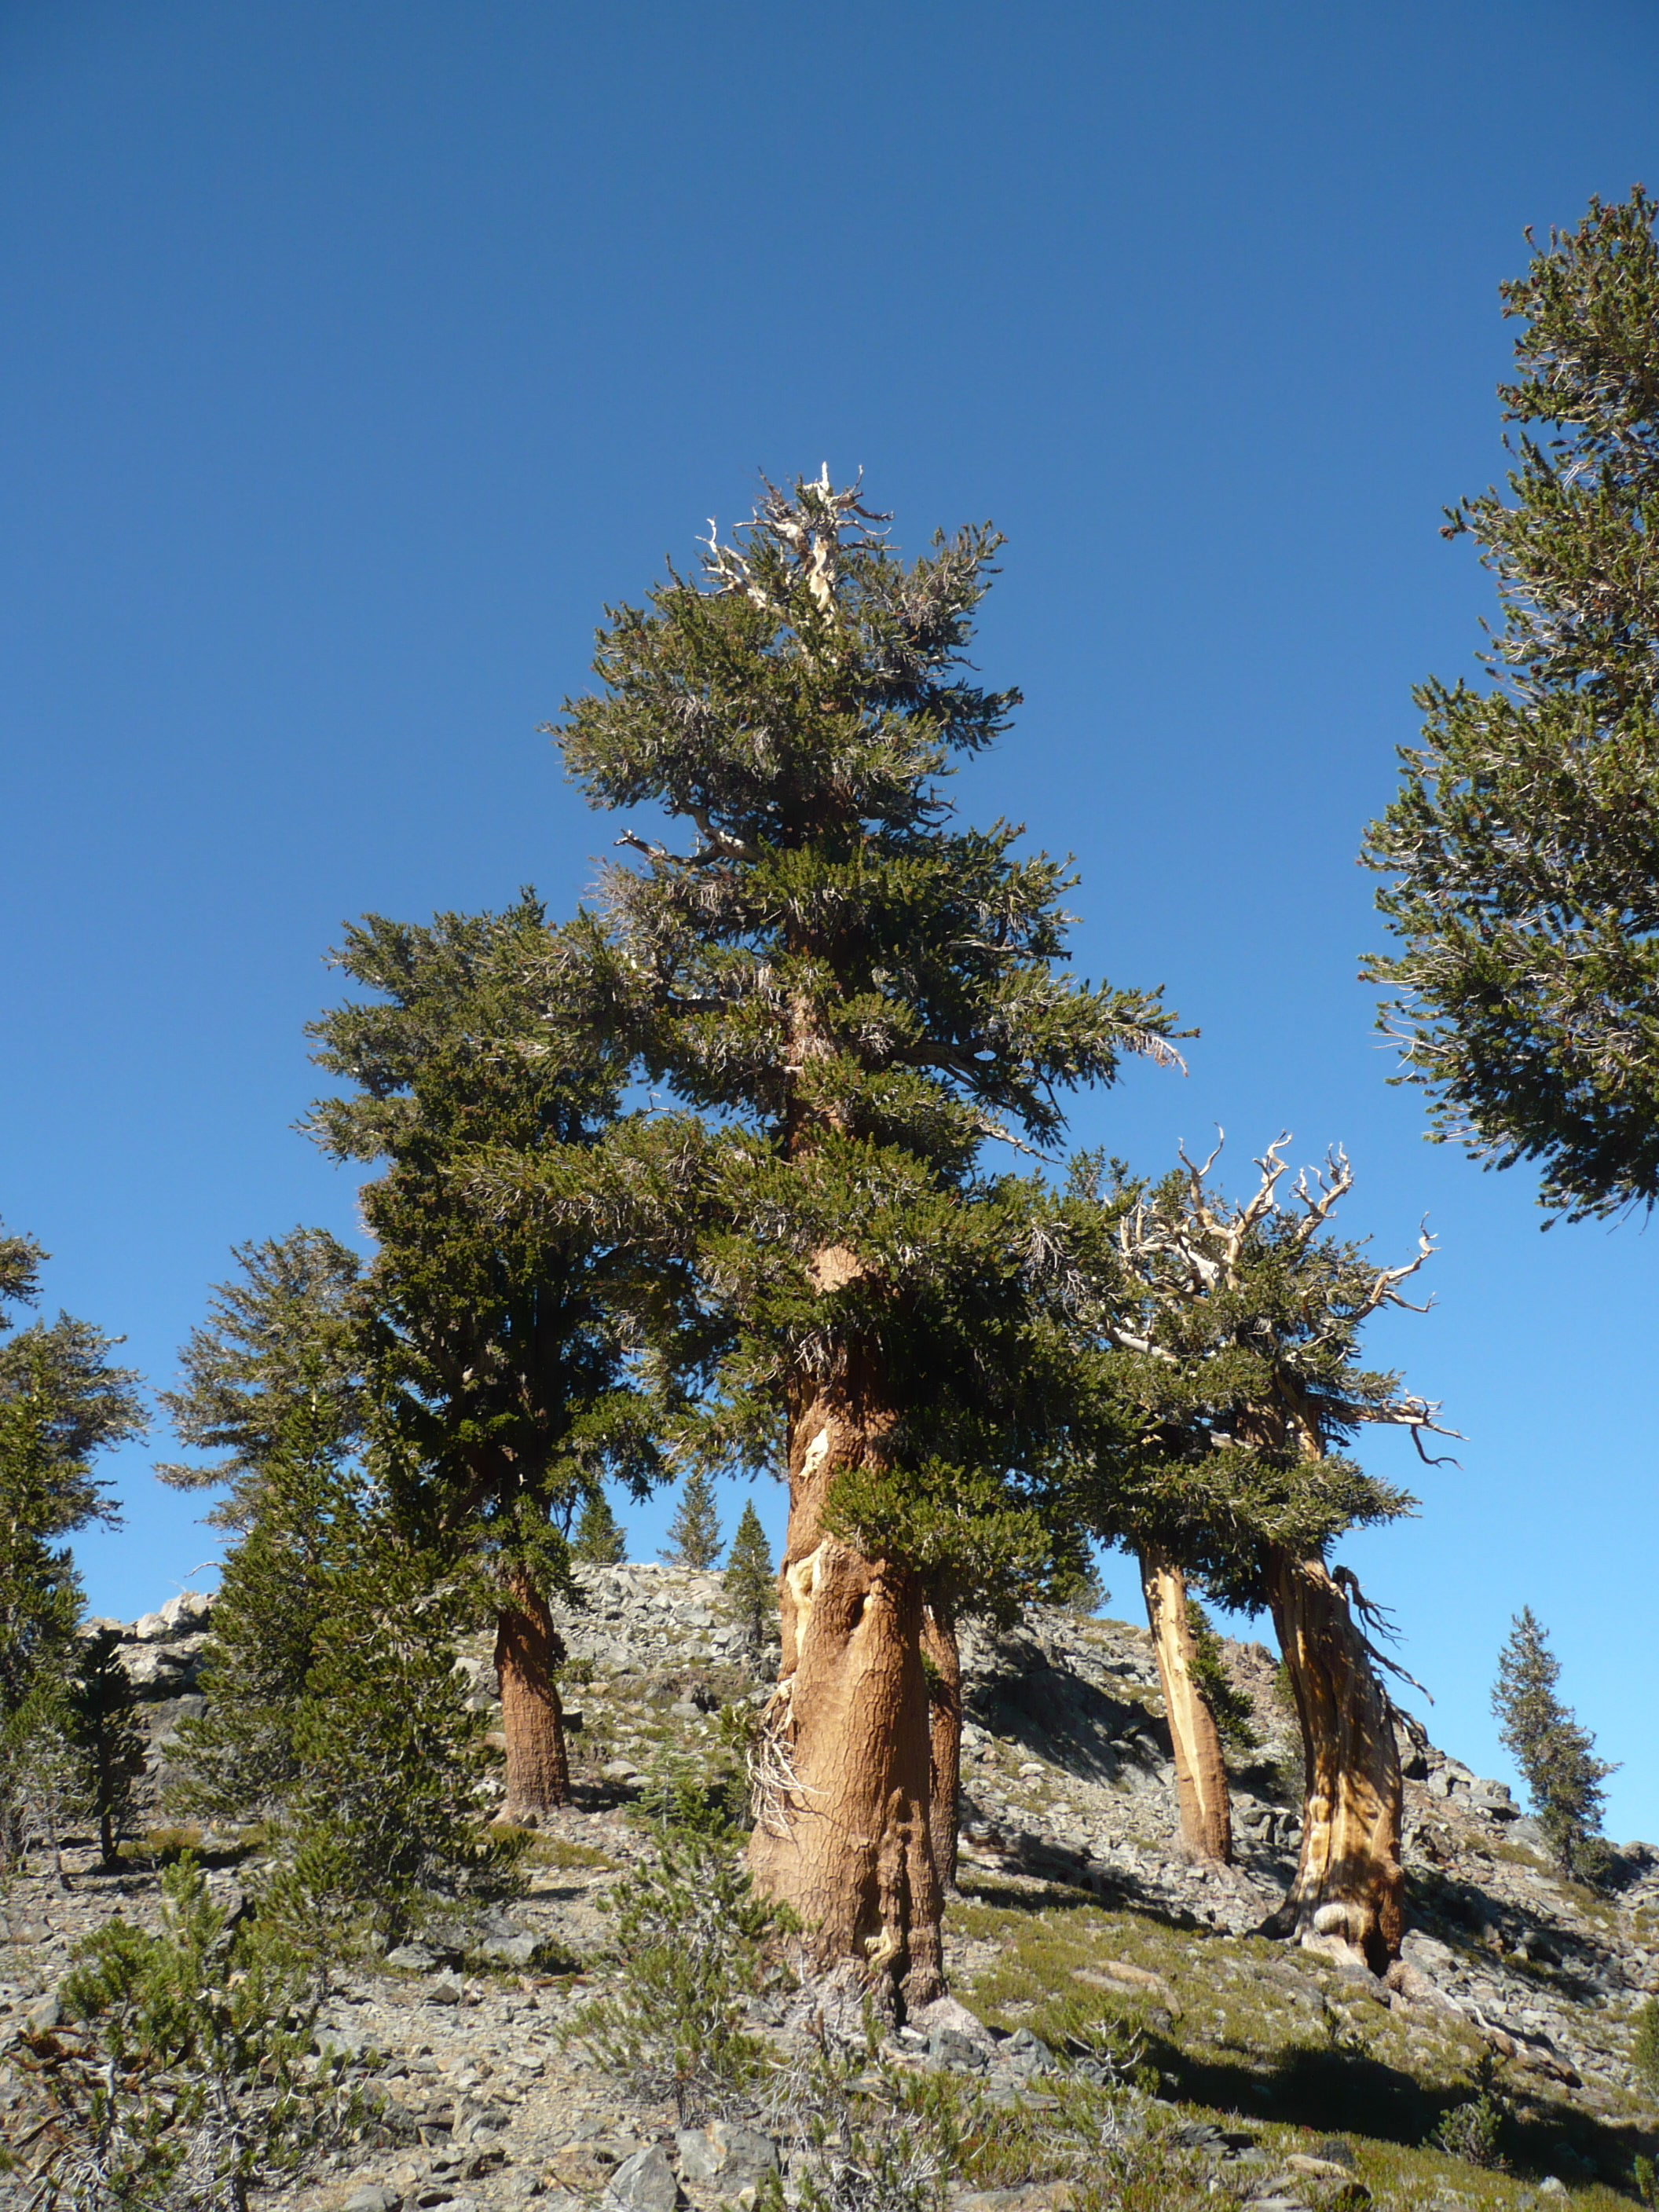 Foxtail pine at tree-line in the Sierra Nevada